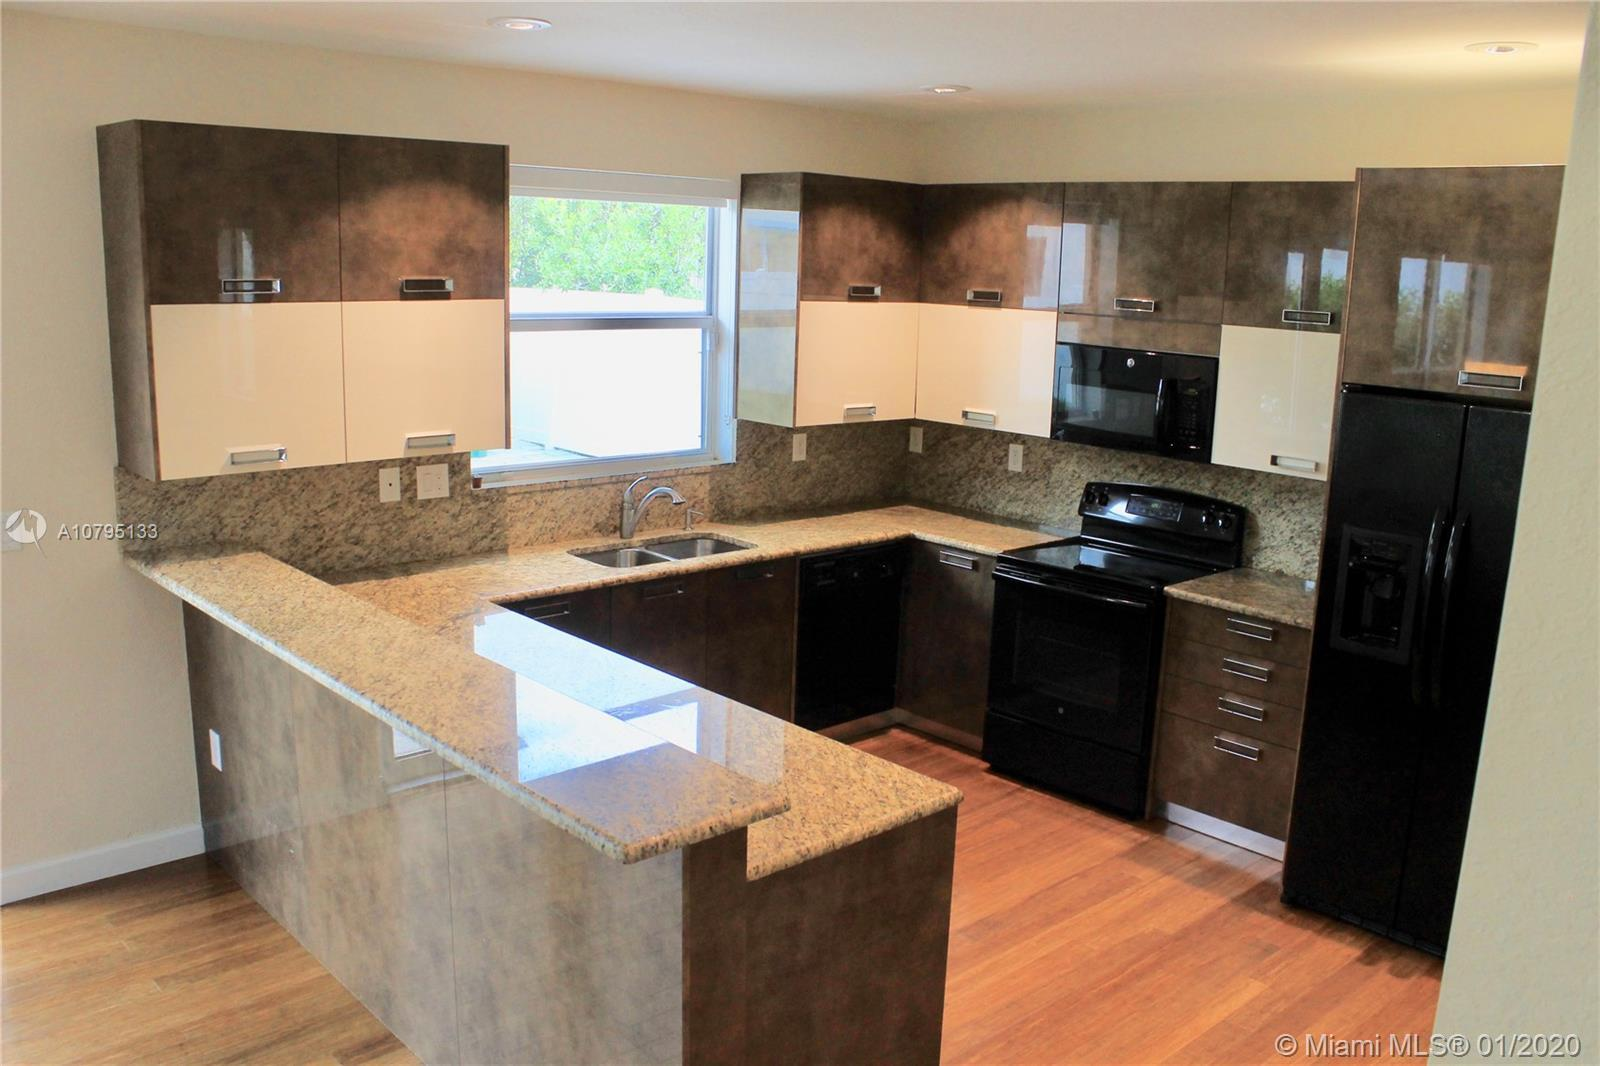 MOTIVATED SELLER! 4 Bed / 3 Bath PLUS Efficiency with Full Kitchen and Bathroom, Over a 5,200 SqFt L